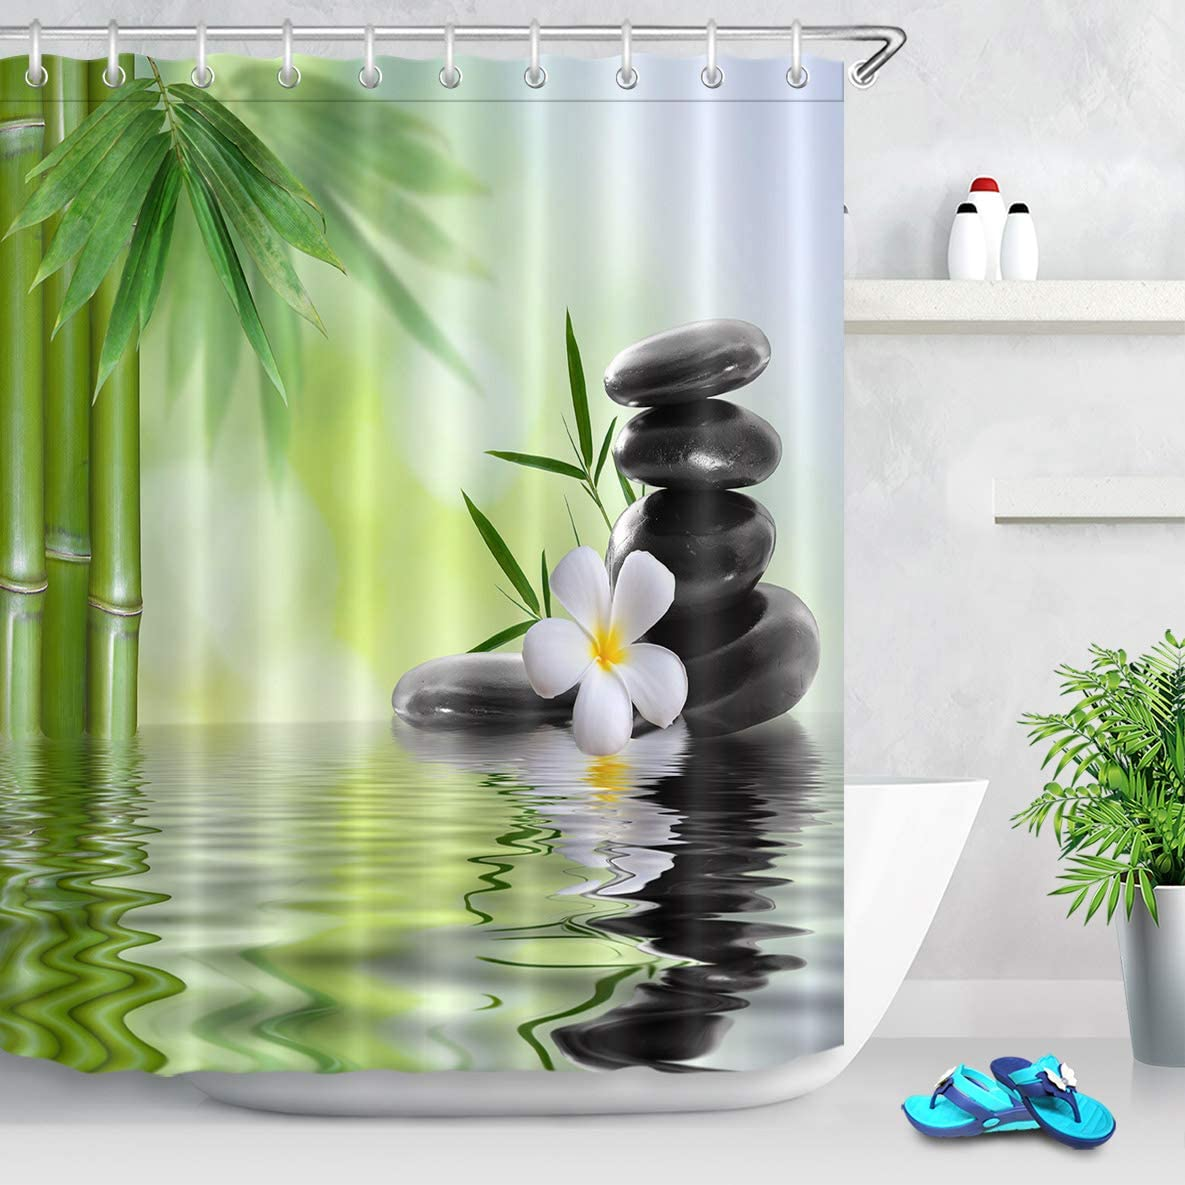 spa shower curtain with hooks black stones orchids bamboo water bath curtain 180w x 200h cm water repellent washable anti mold polyester factory